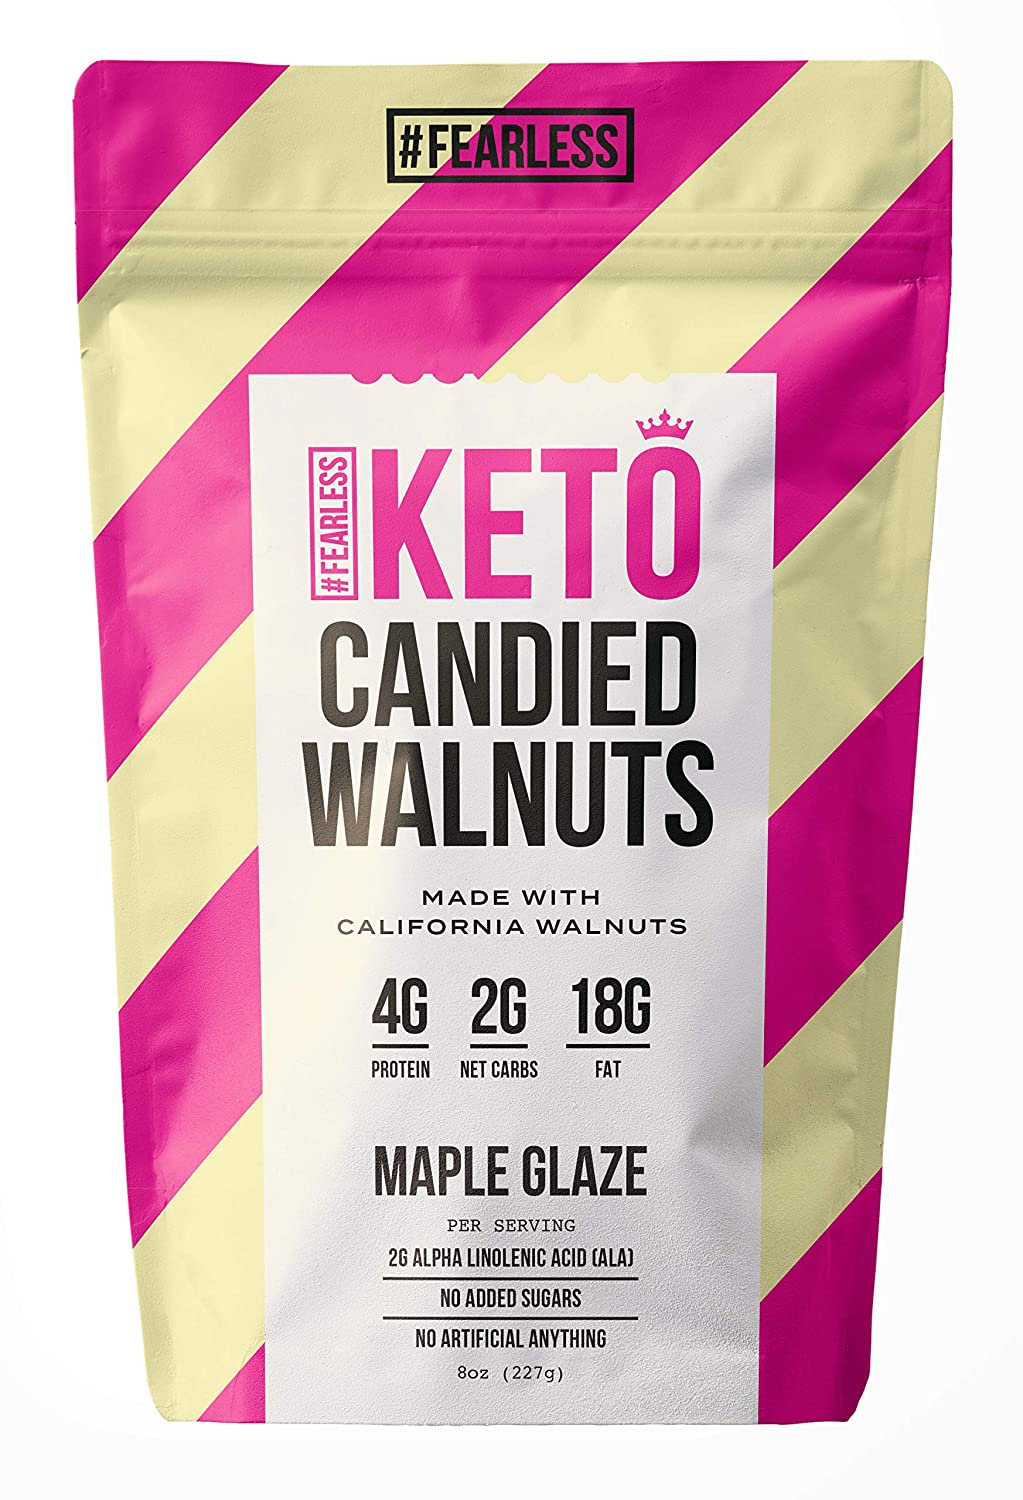 Fearless Keto Small Batch Hand-Roasted Walnuts Low Lowest price challenge - Candied Same day shipping Car